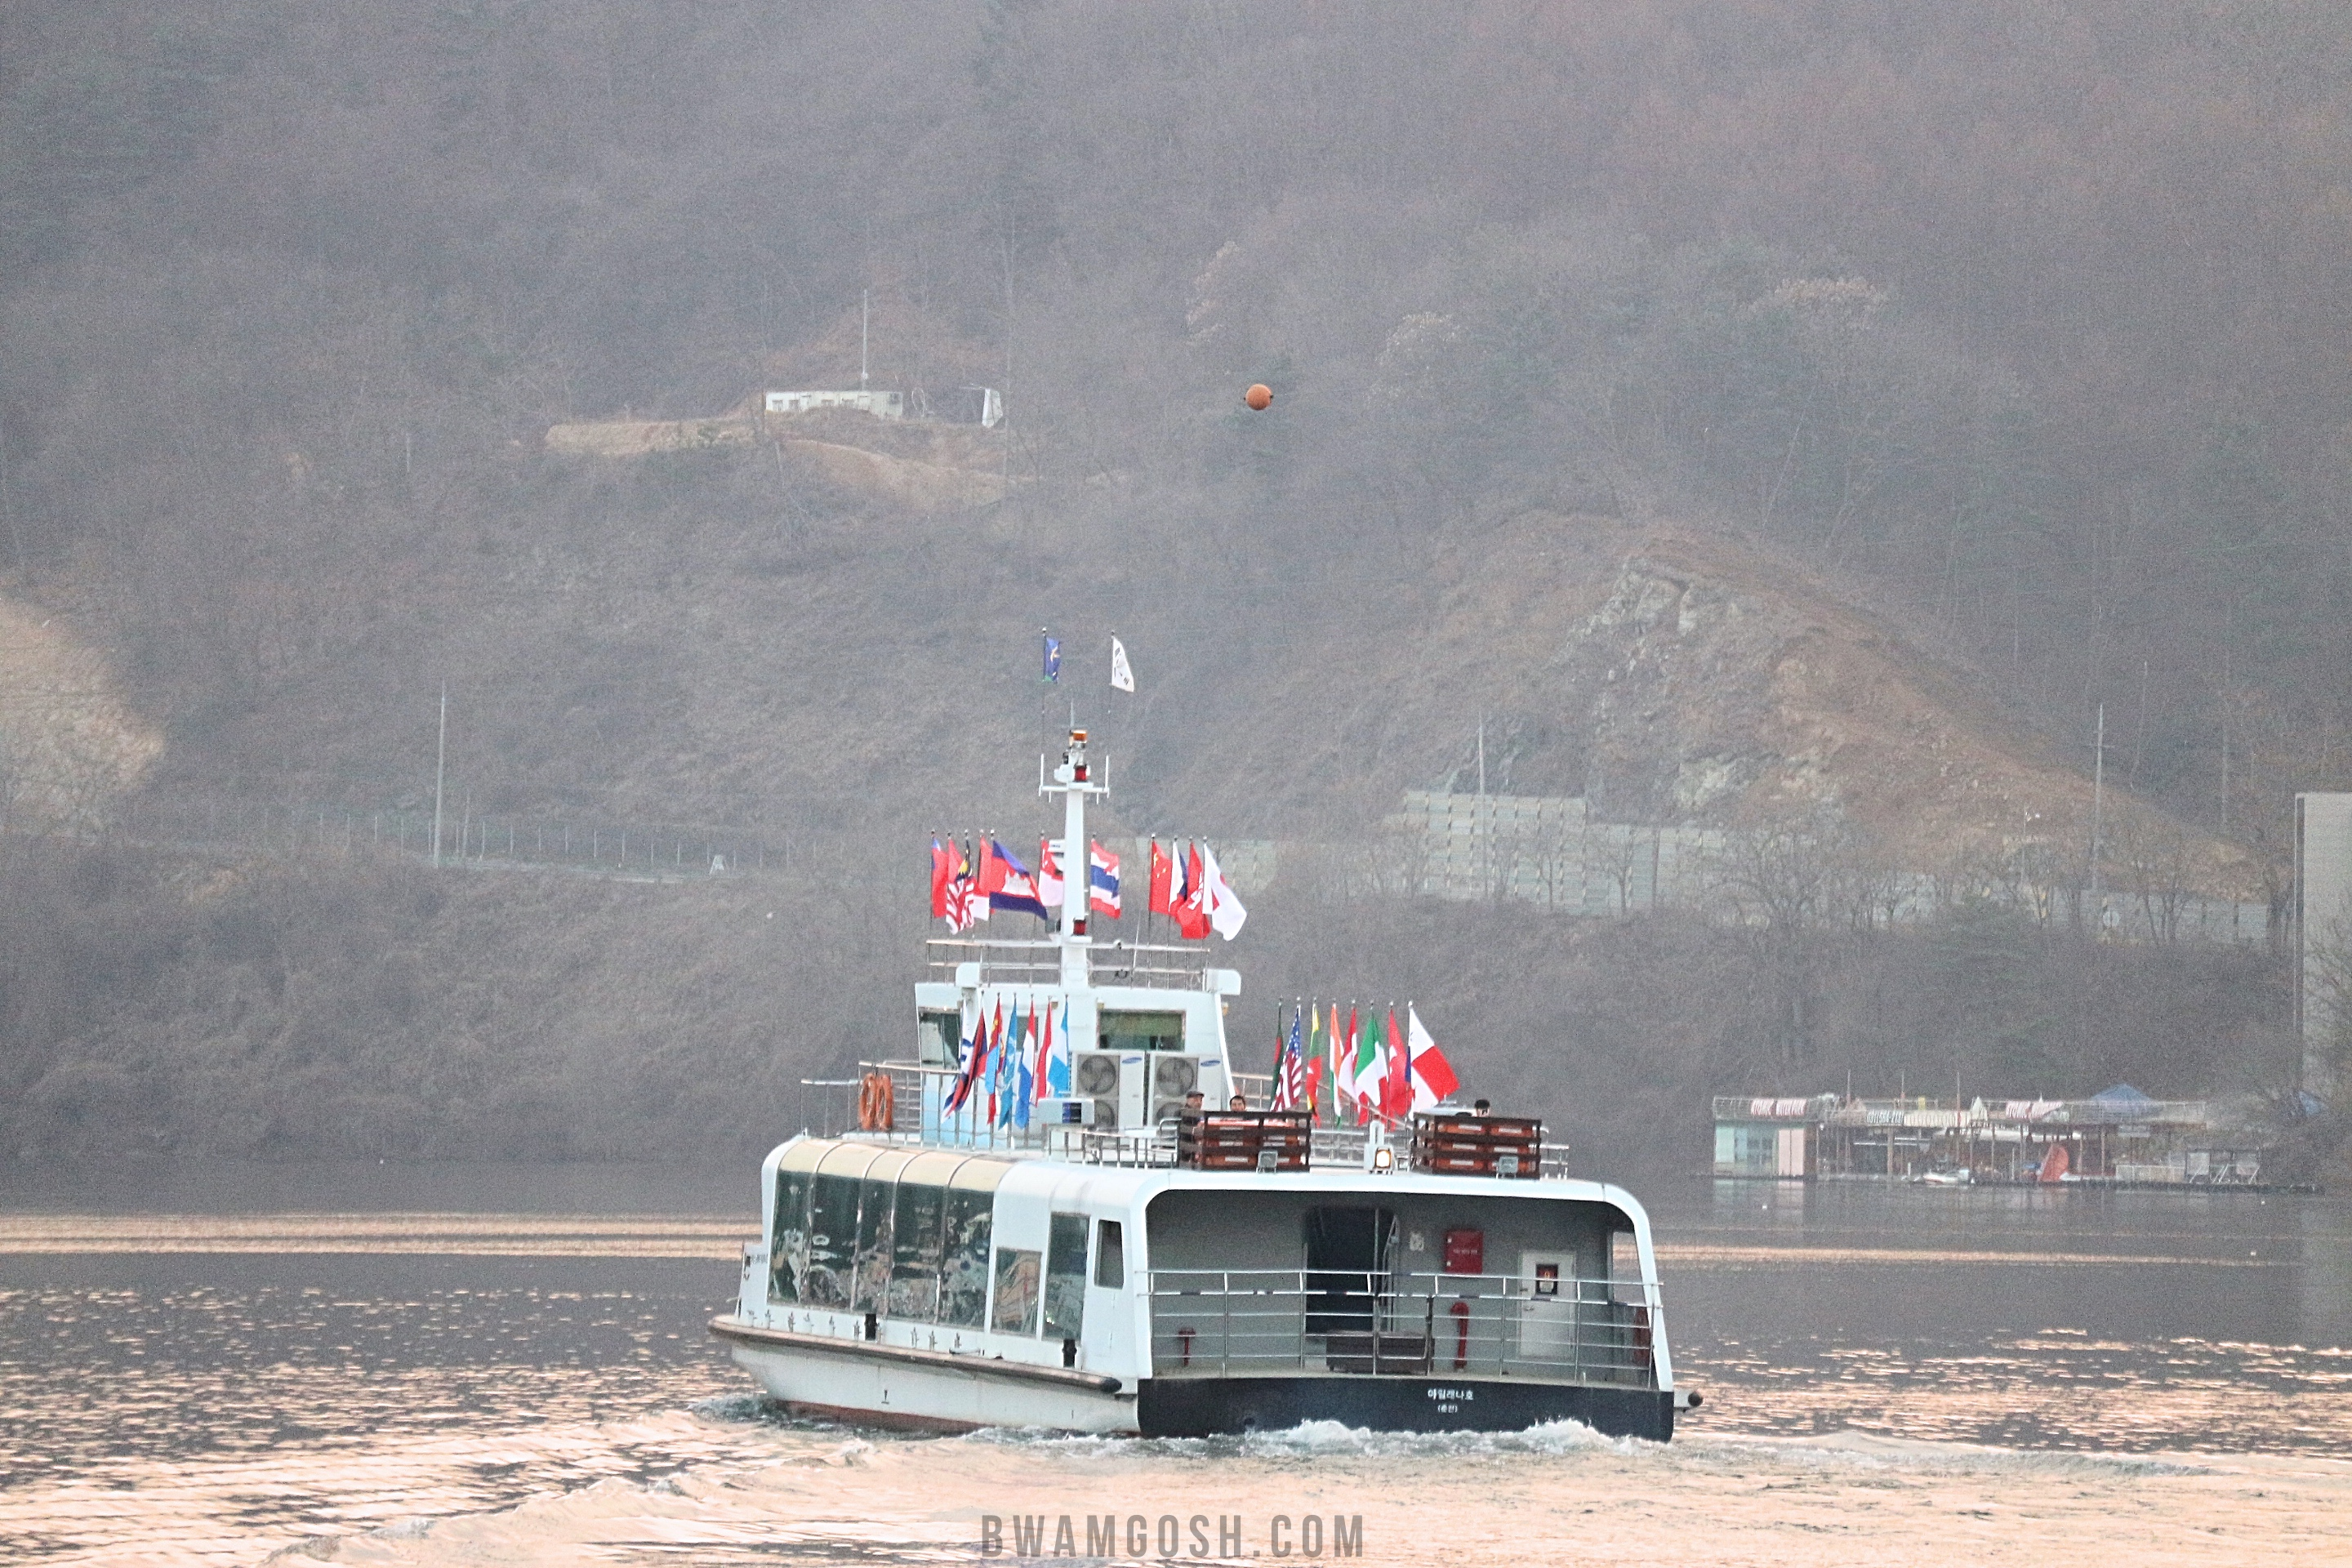 The ferry heads to Nami Island